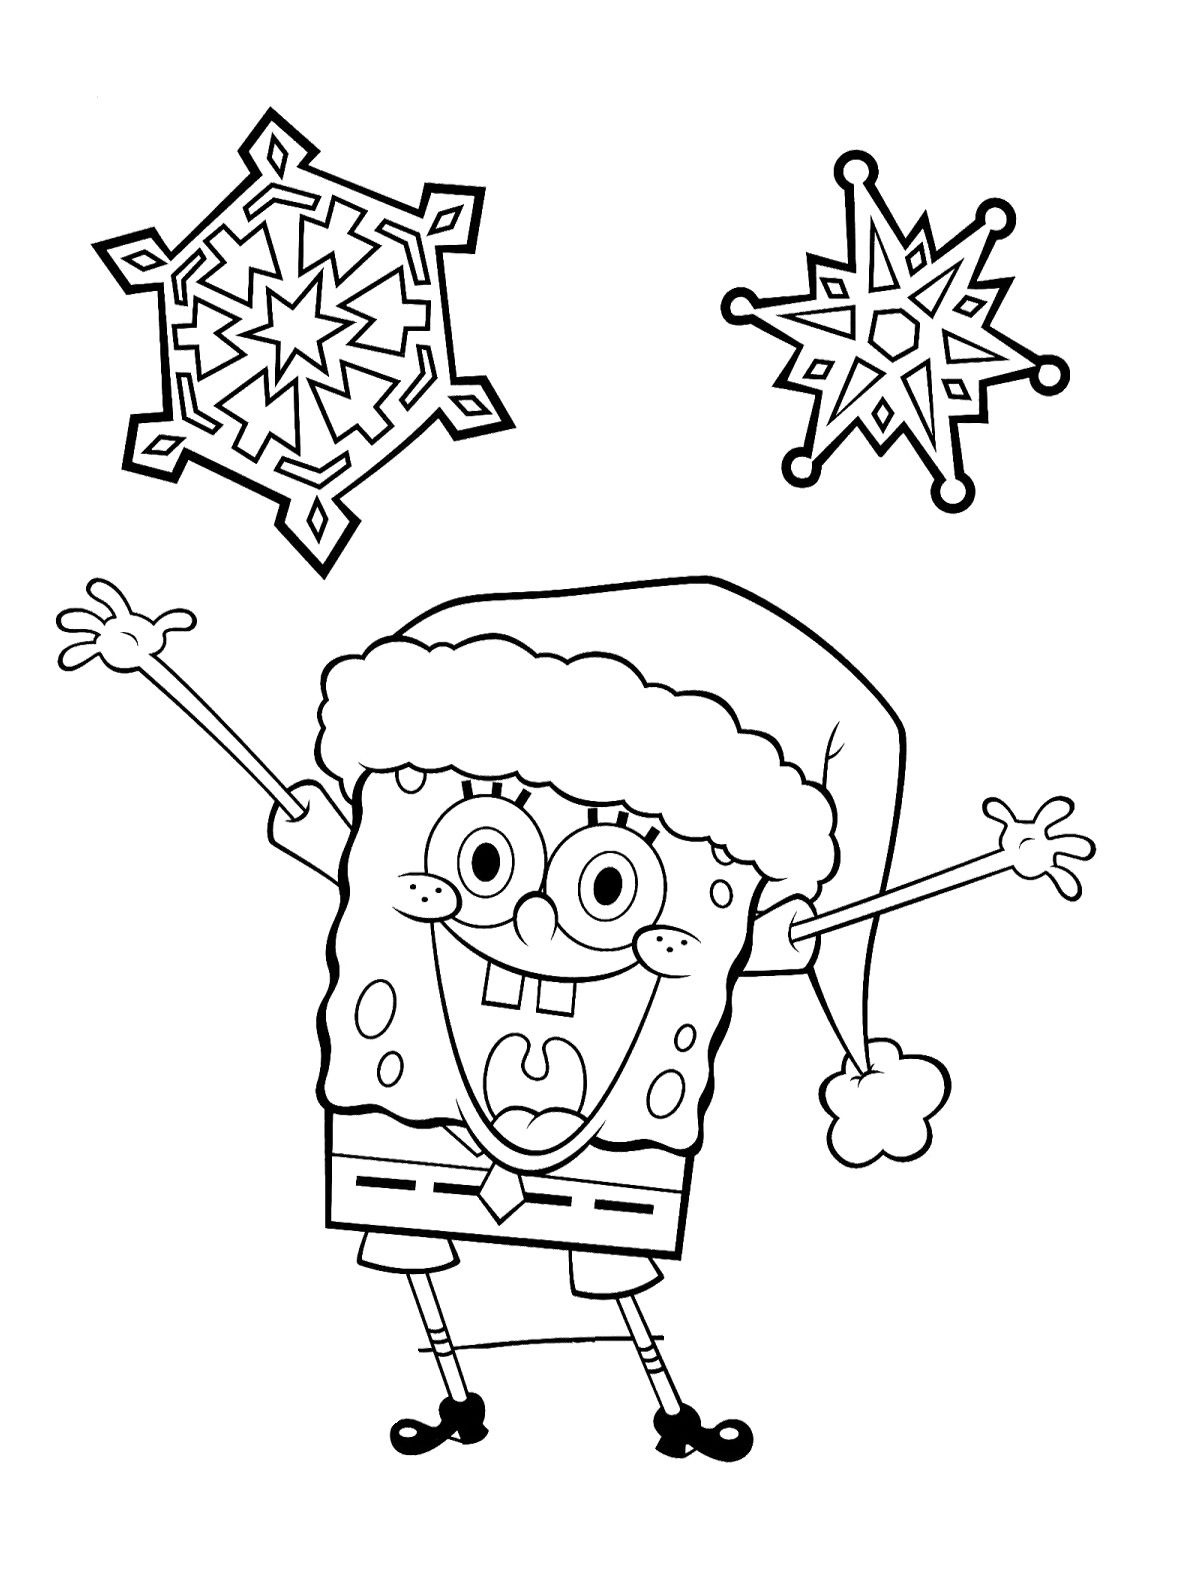 Spongebob Christmas Laugh And Happy Coloring Pages Spongebob Christmas Christmas Prints Coloring Pages